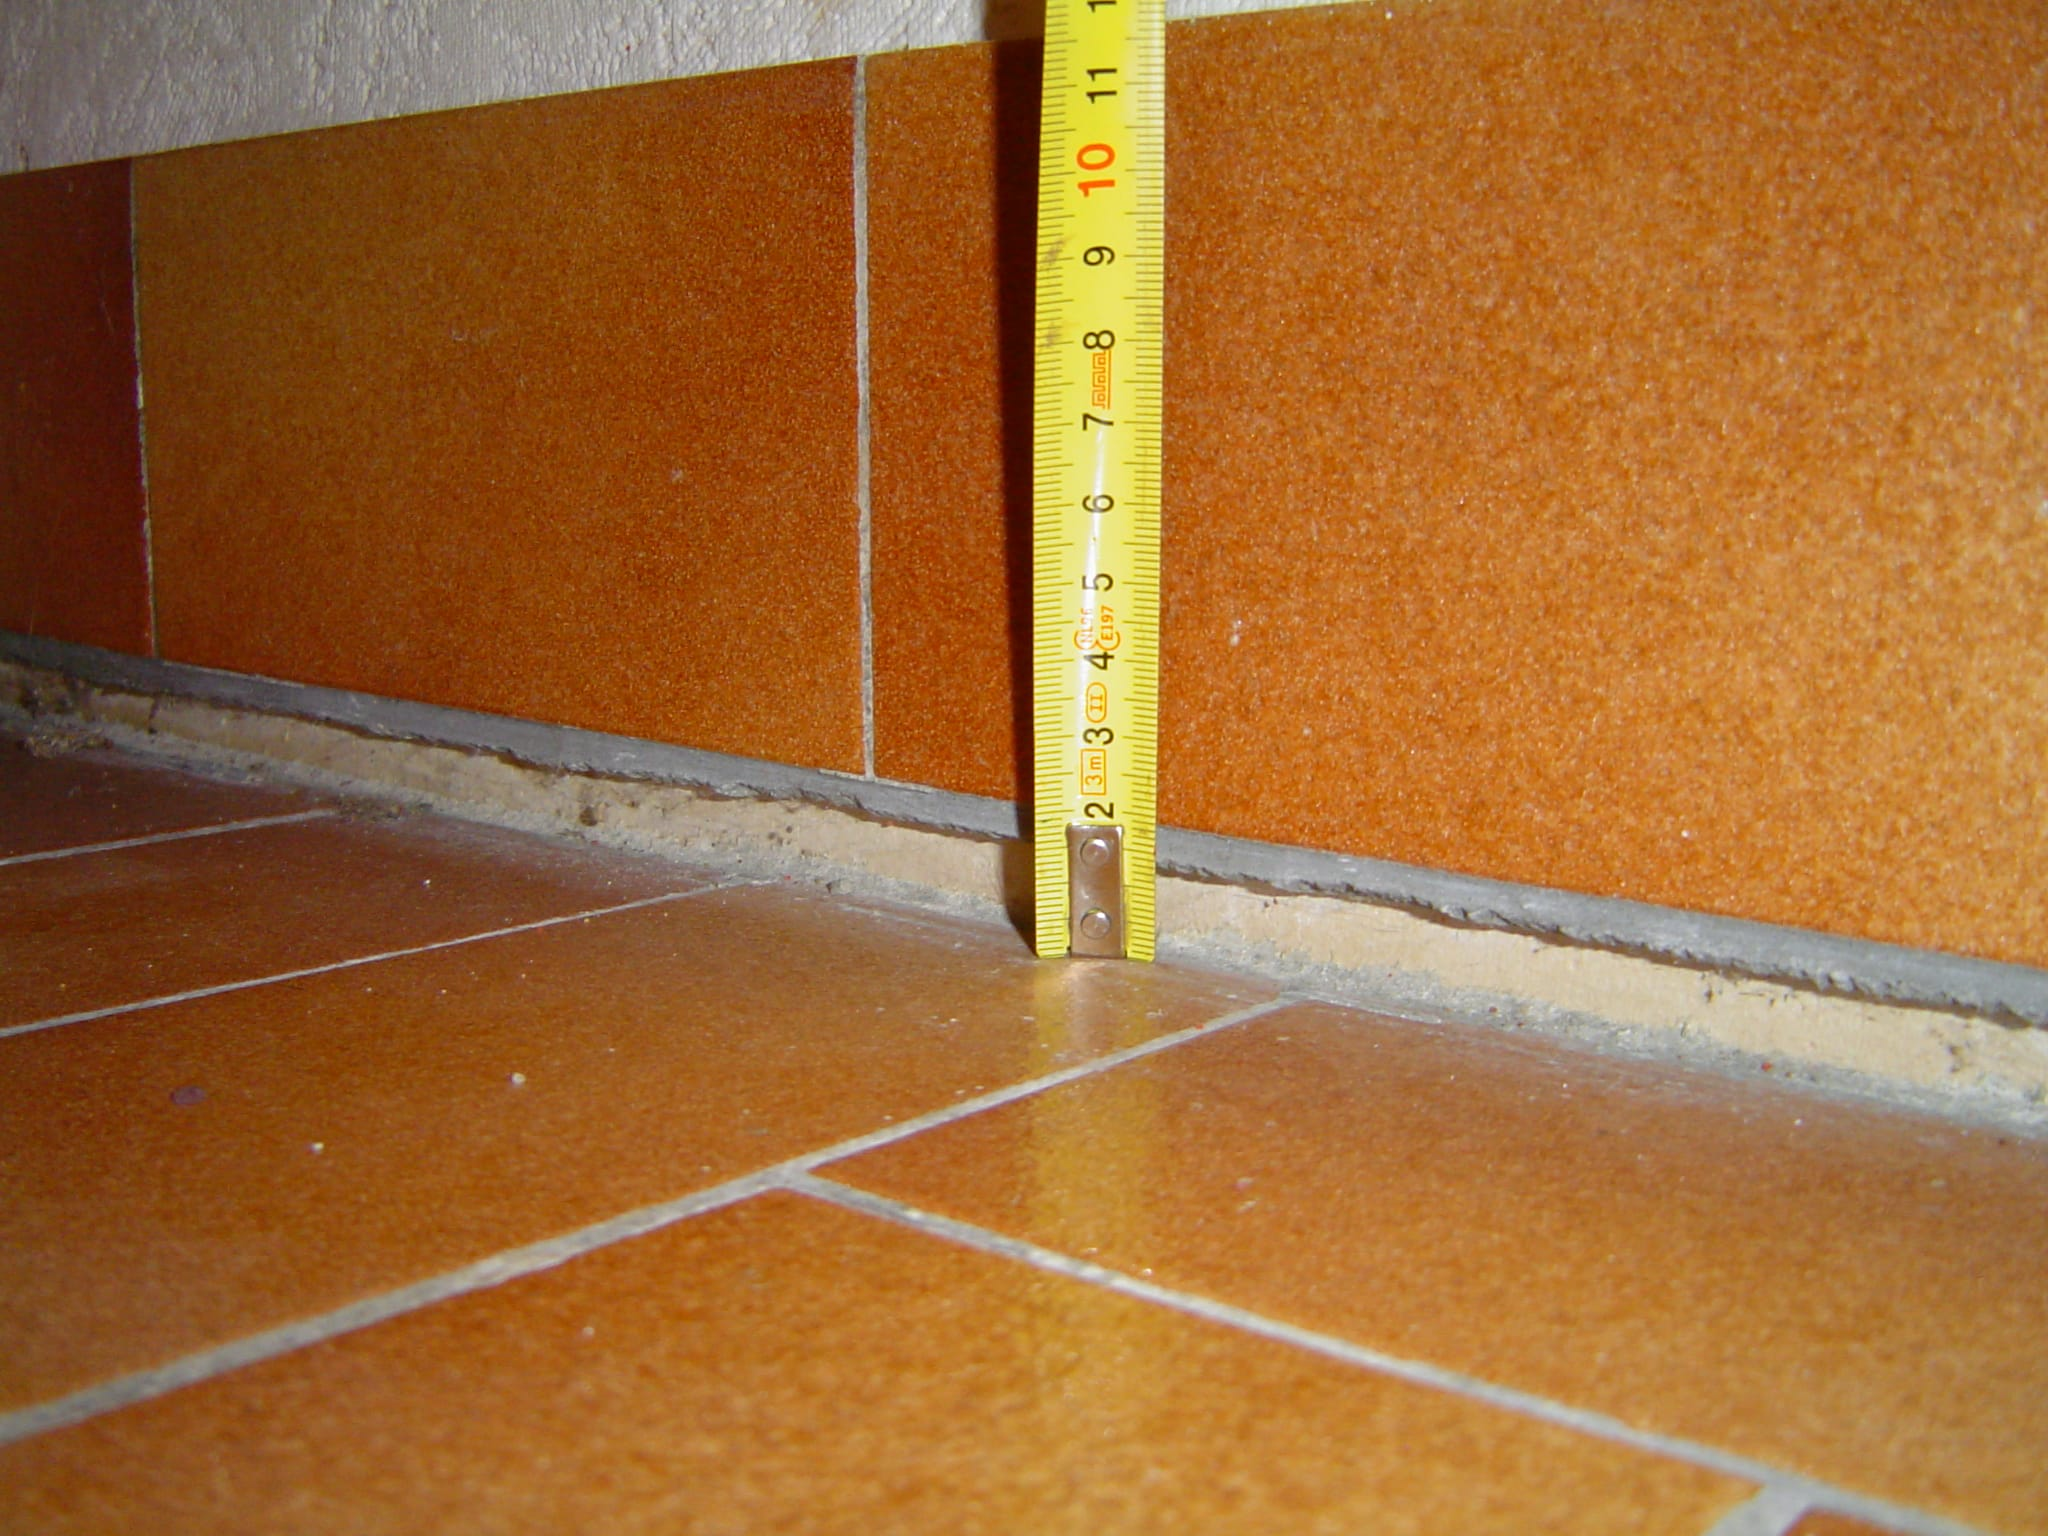 ouest-expertise-carrelage-neuf-fissure